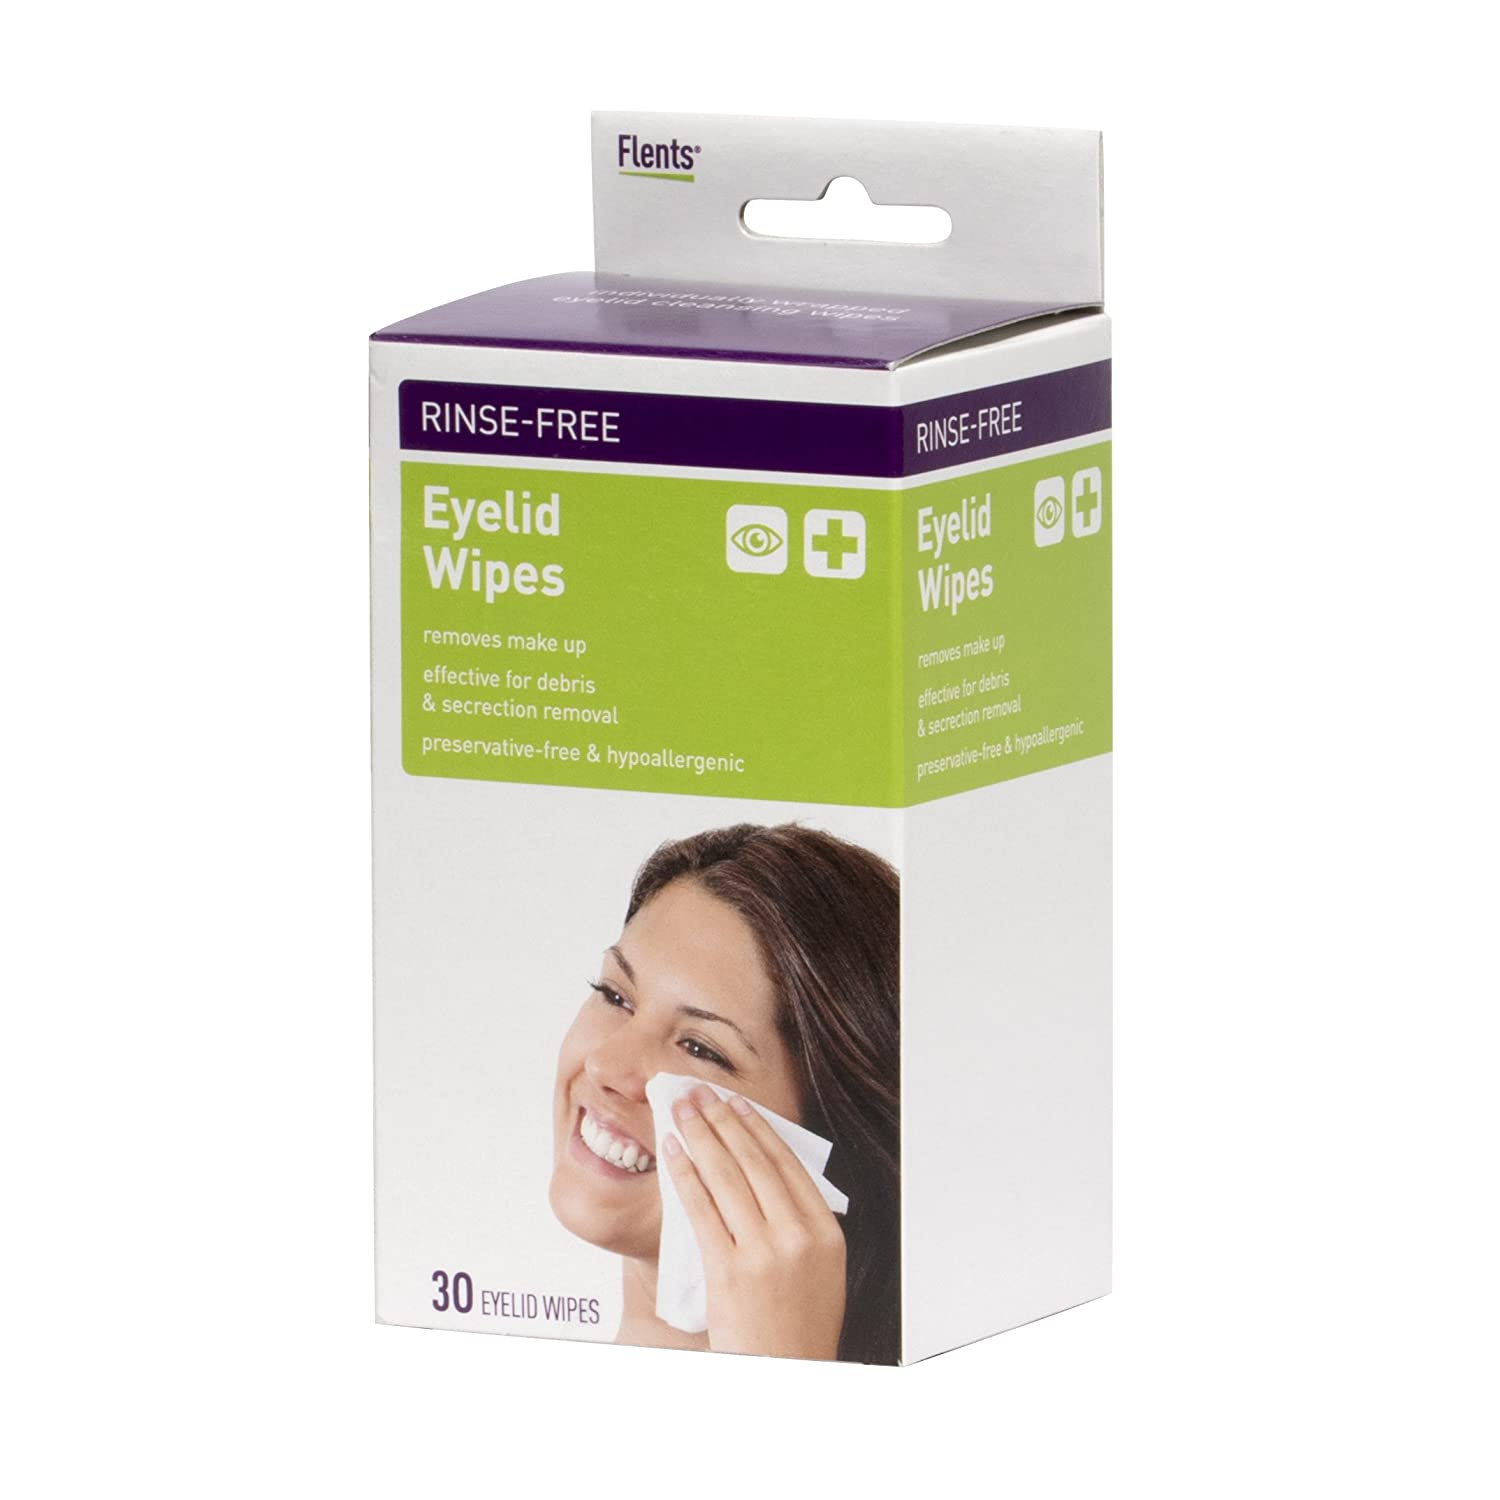 Flents Rinse Free Eyelid Wipes - 30 Count API 68300